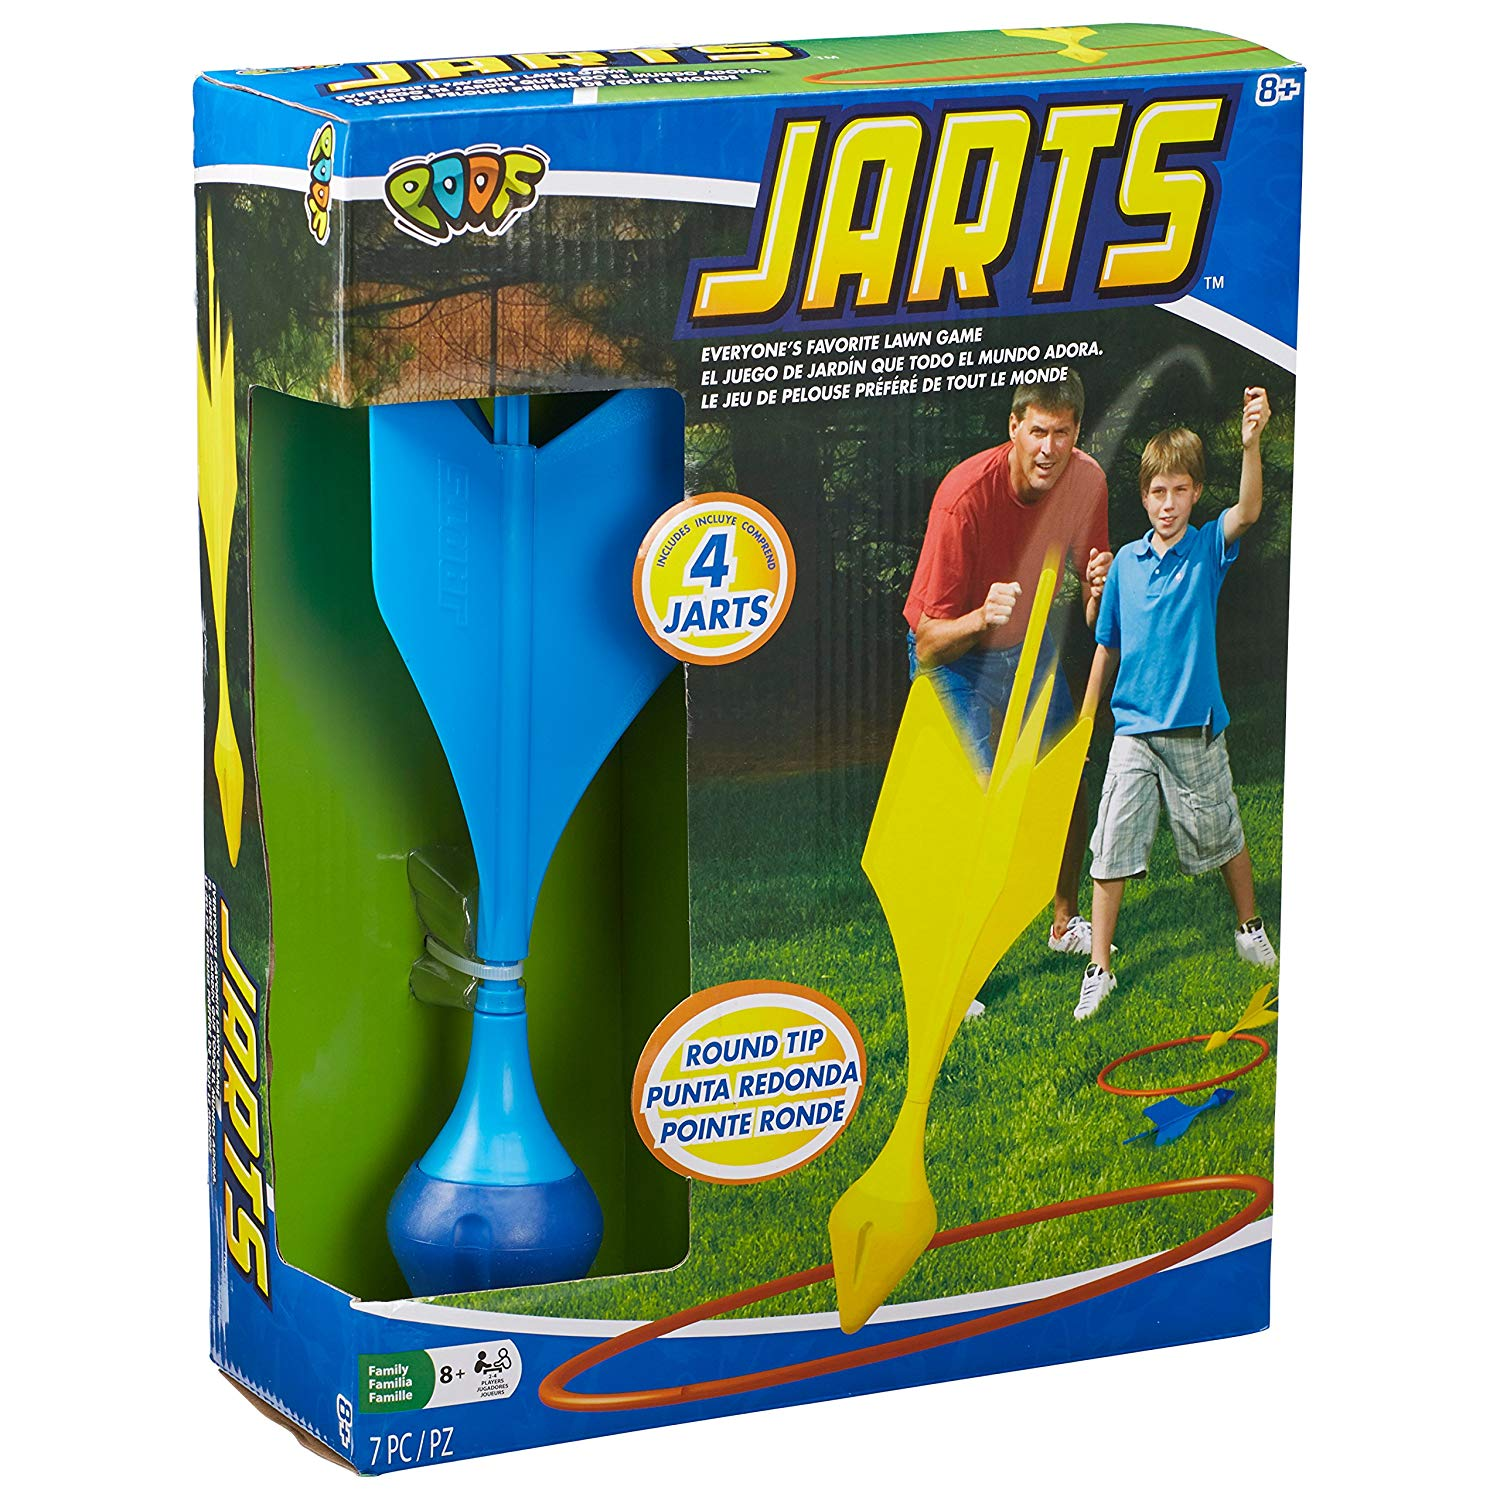 Amazon Deal – Outdoor Lawn Darts Game Only $15.70 (Reg. $23.00)